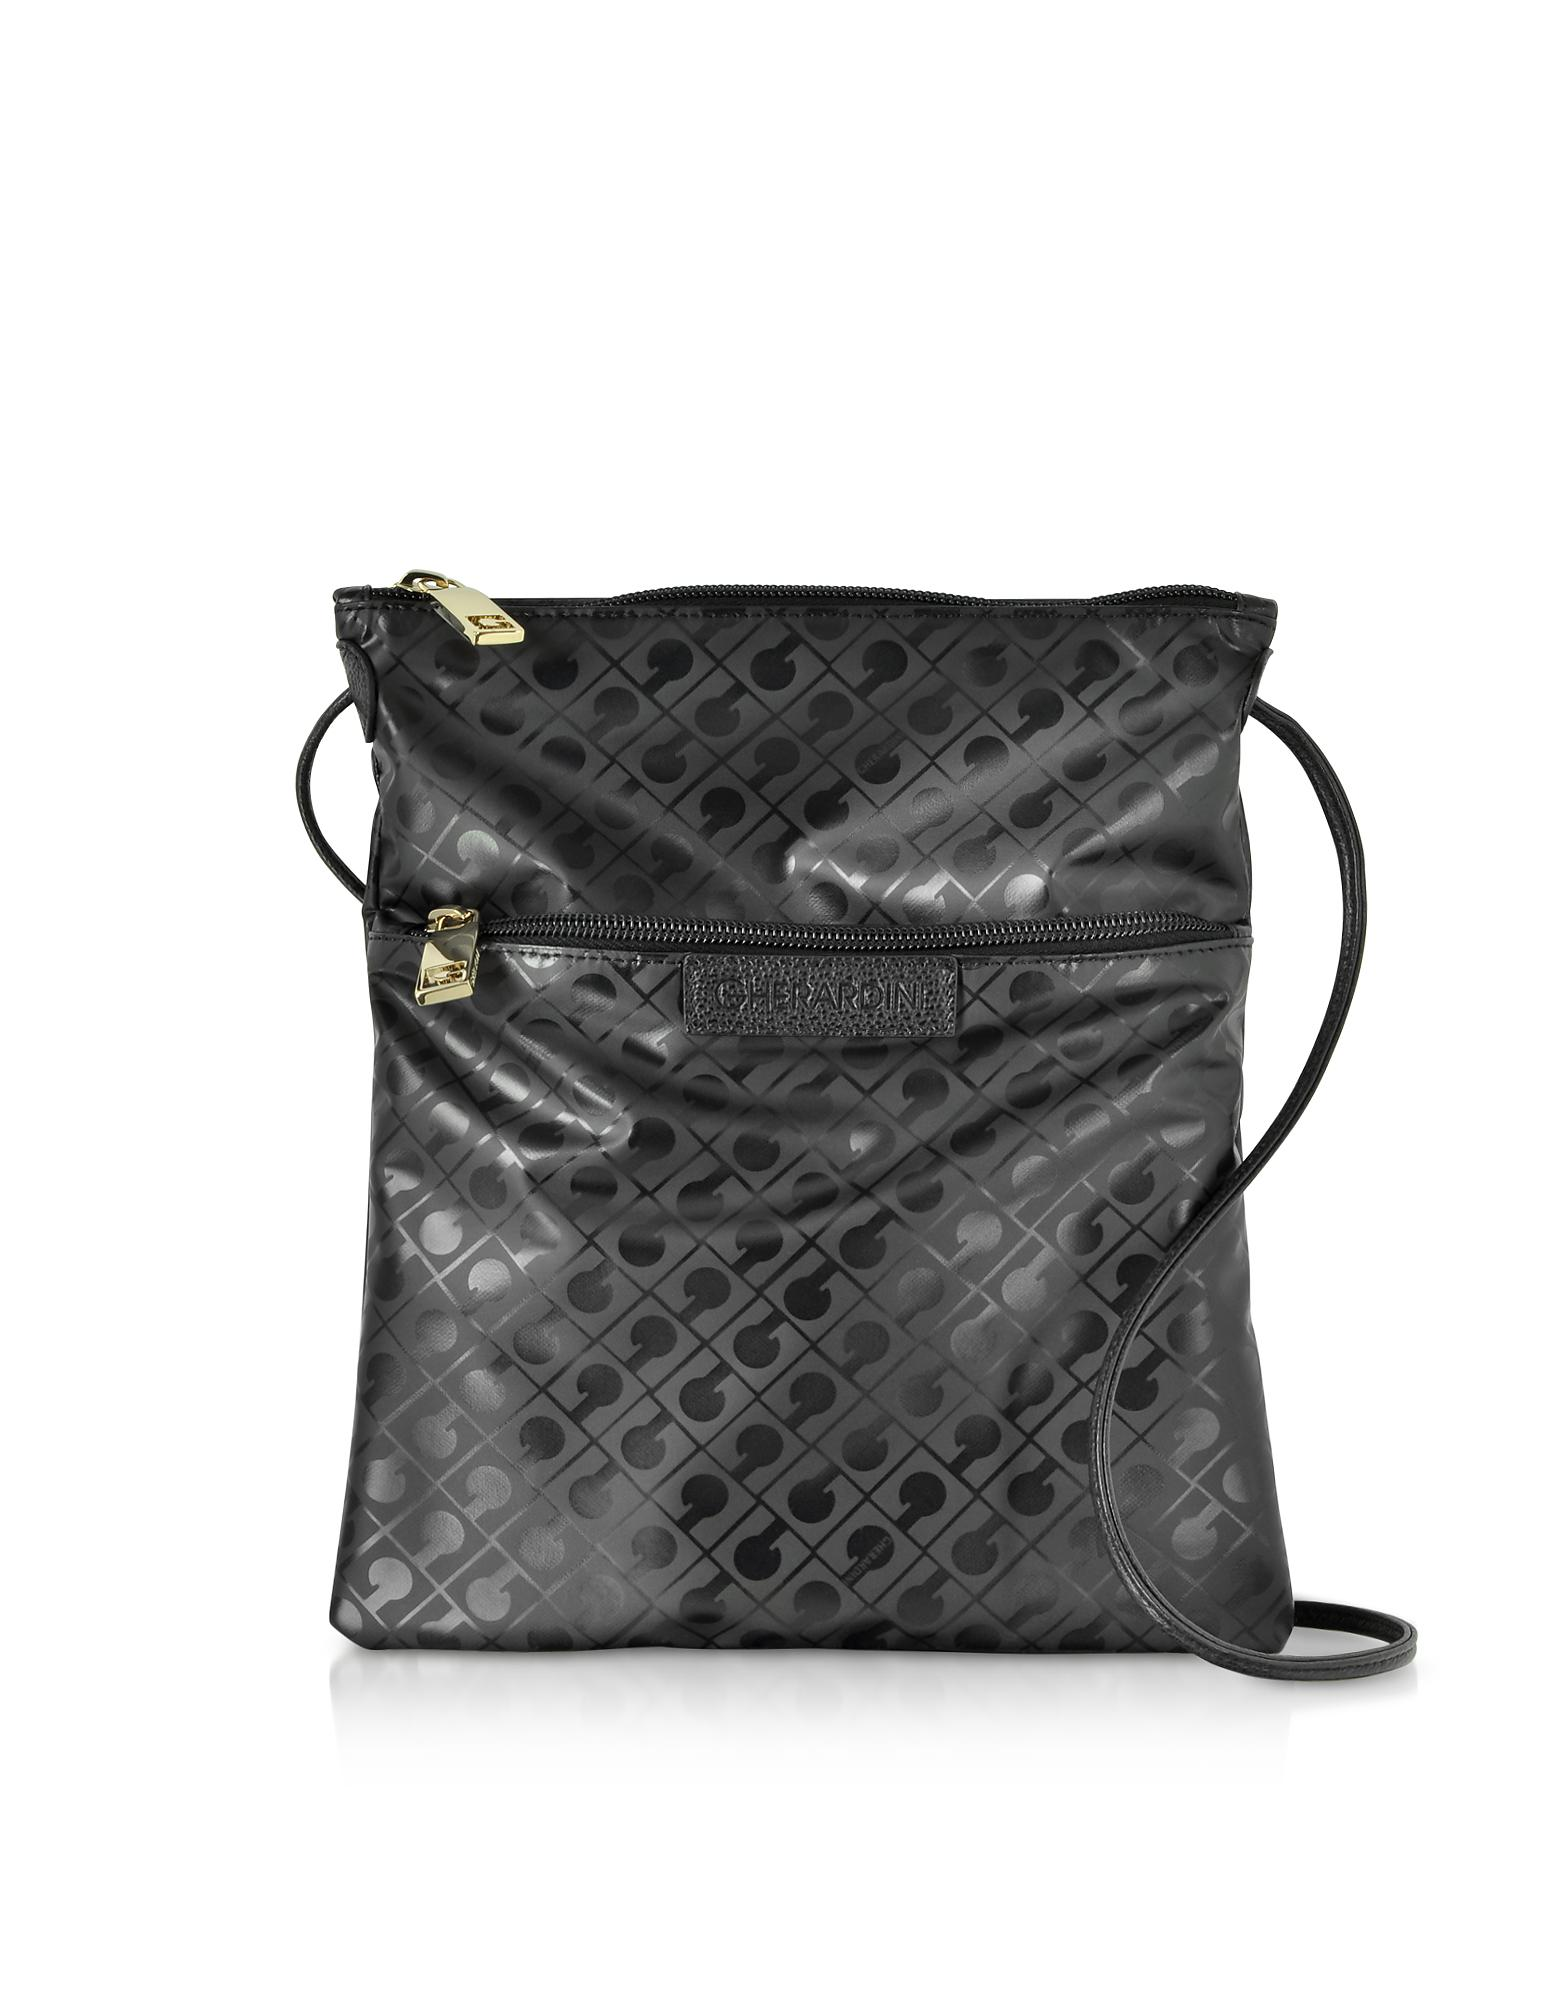 GHERARDINI Handbags, Clay Signature Fabric and Leather Softy Crossbody Bag w/Zip Front Pocket